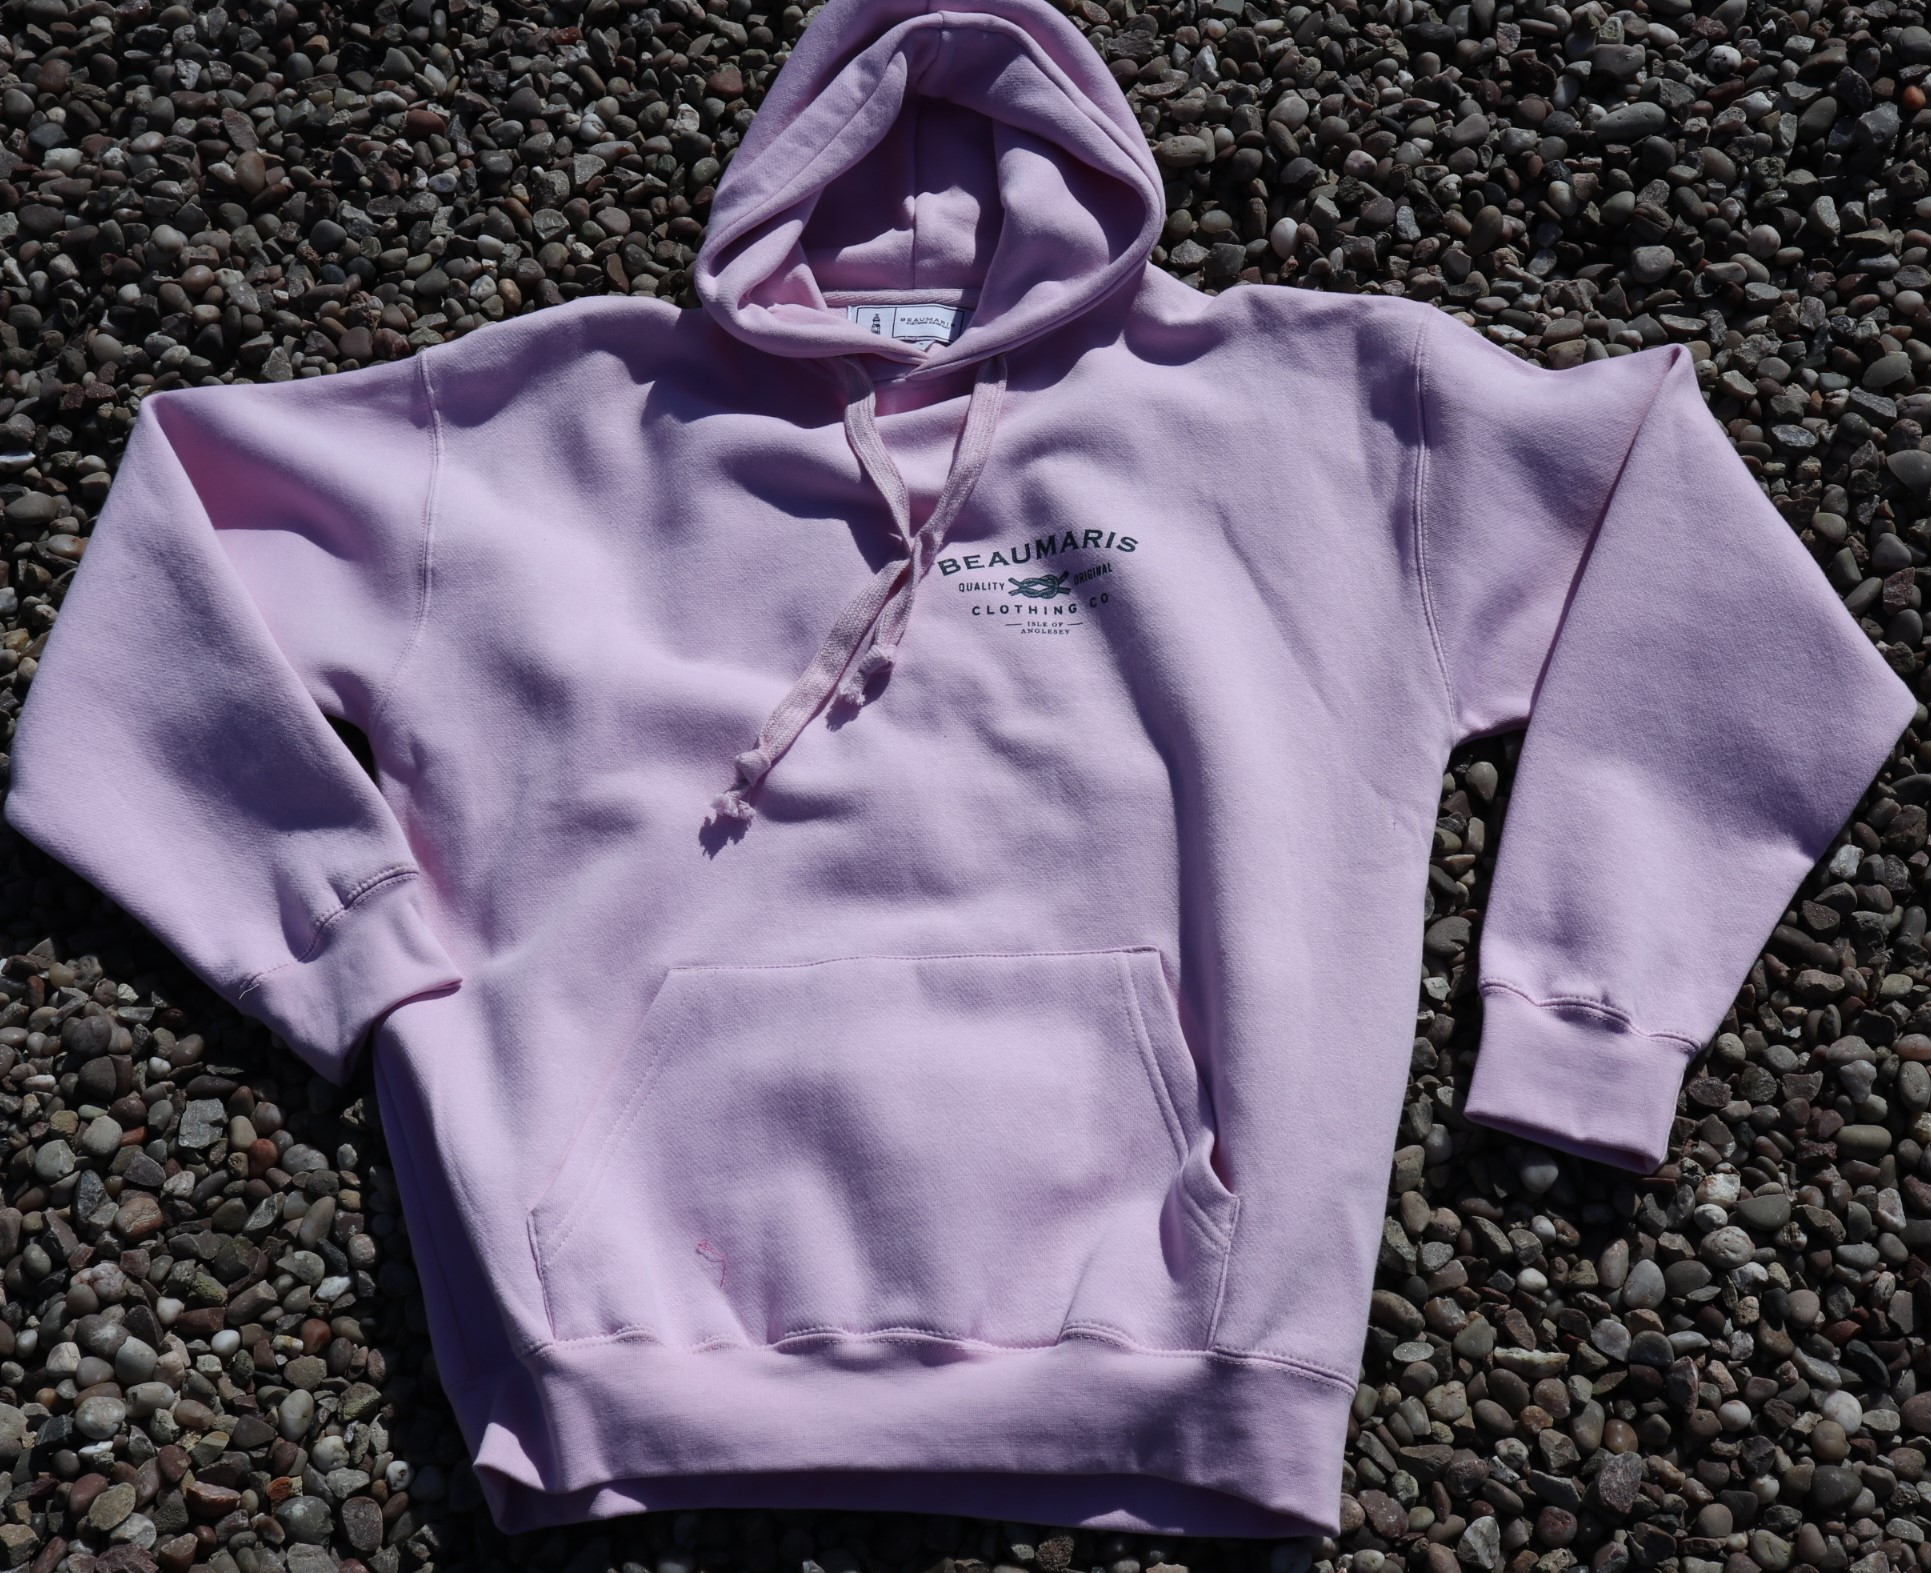 Beaumaris clothing company hoody pale pink